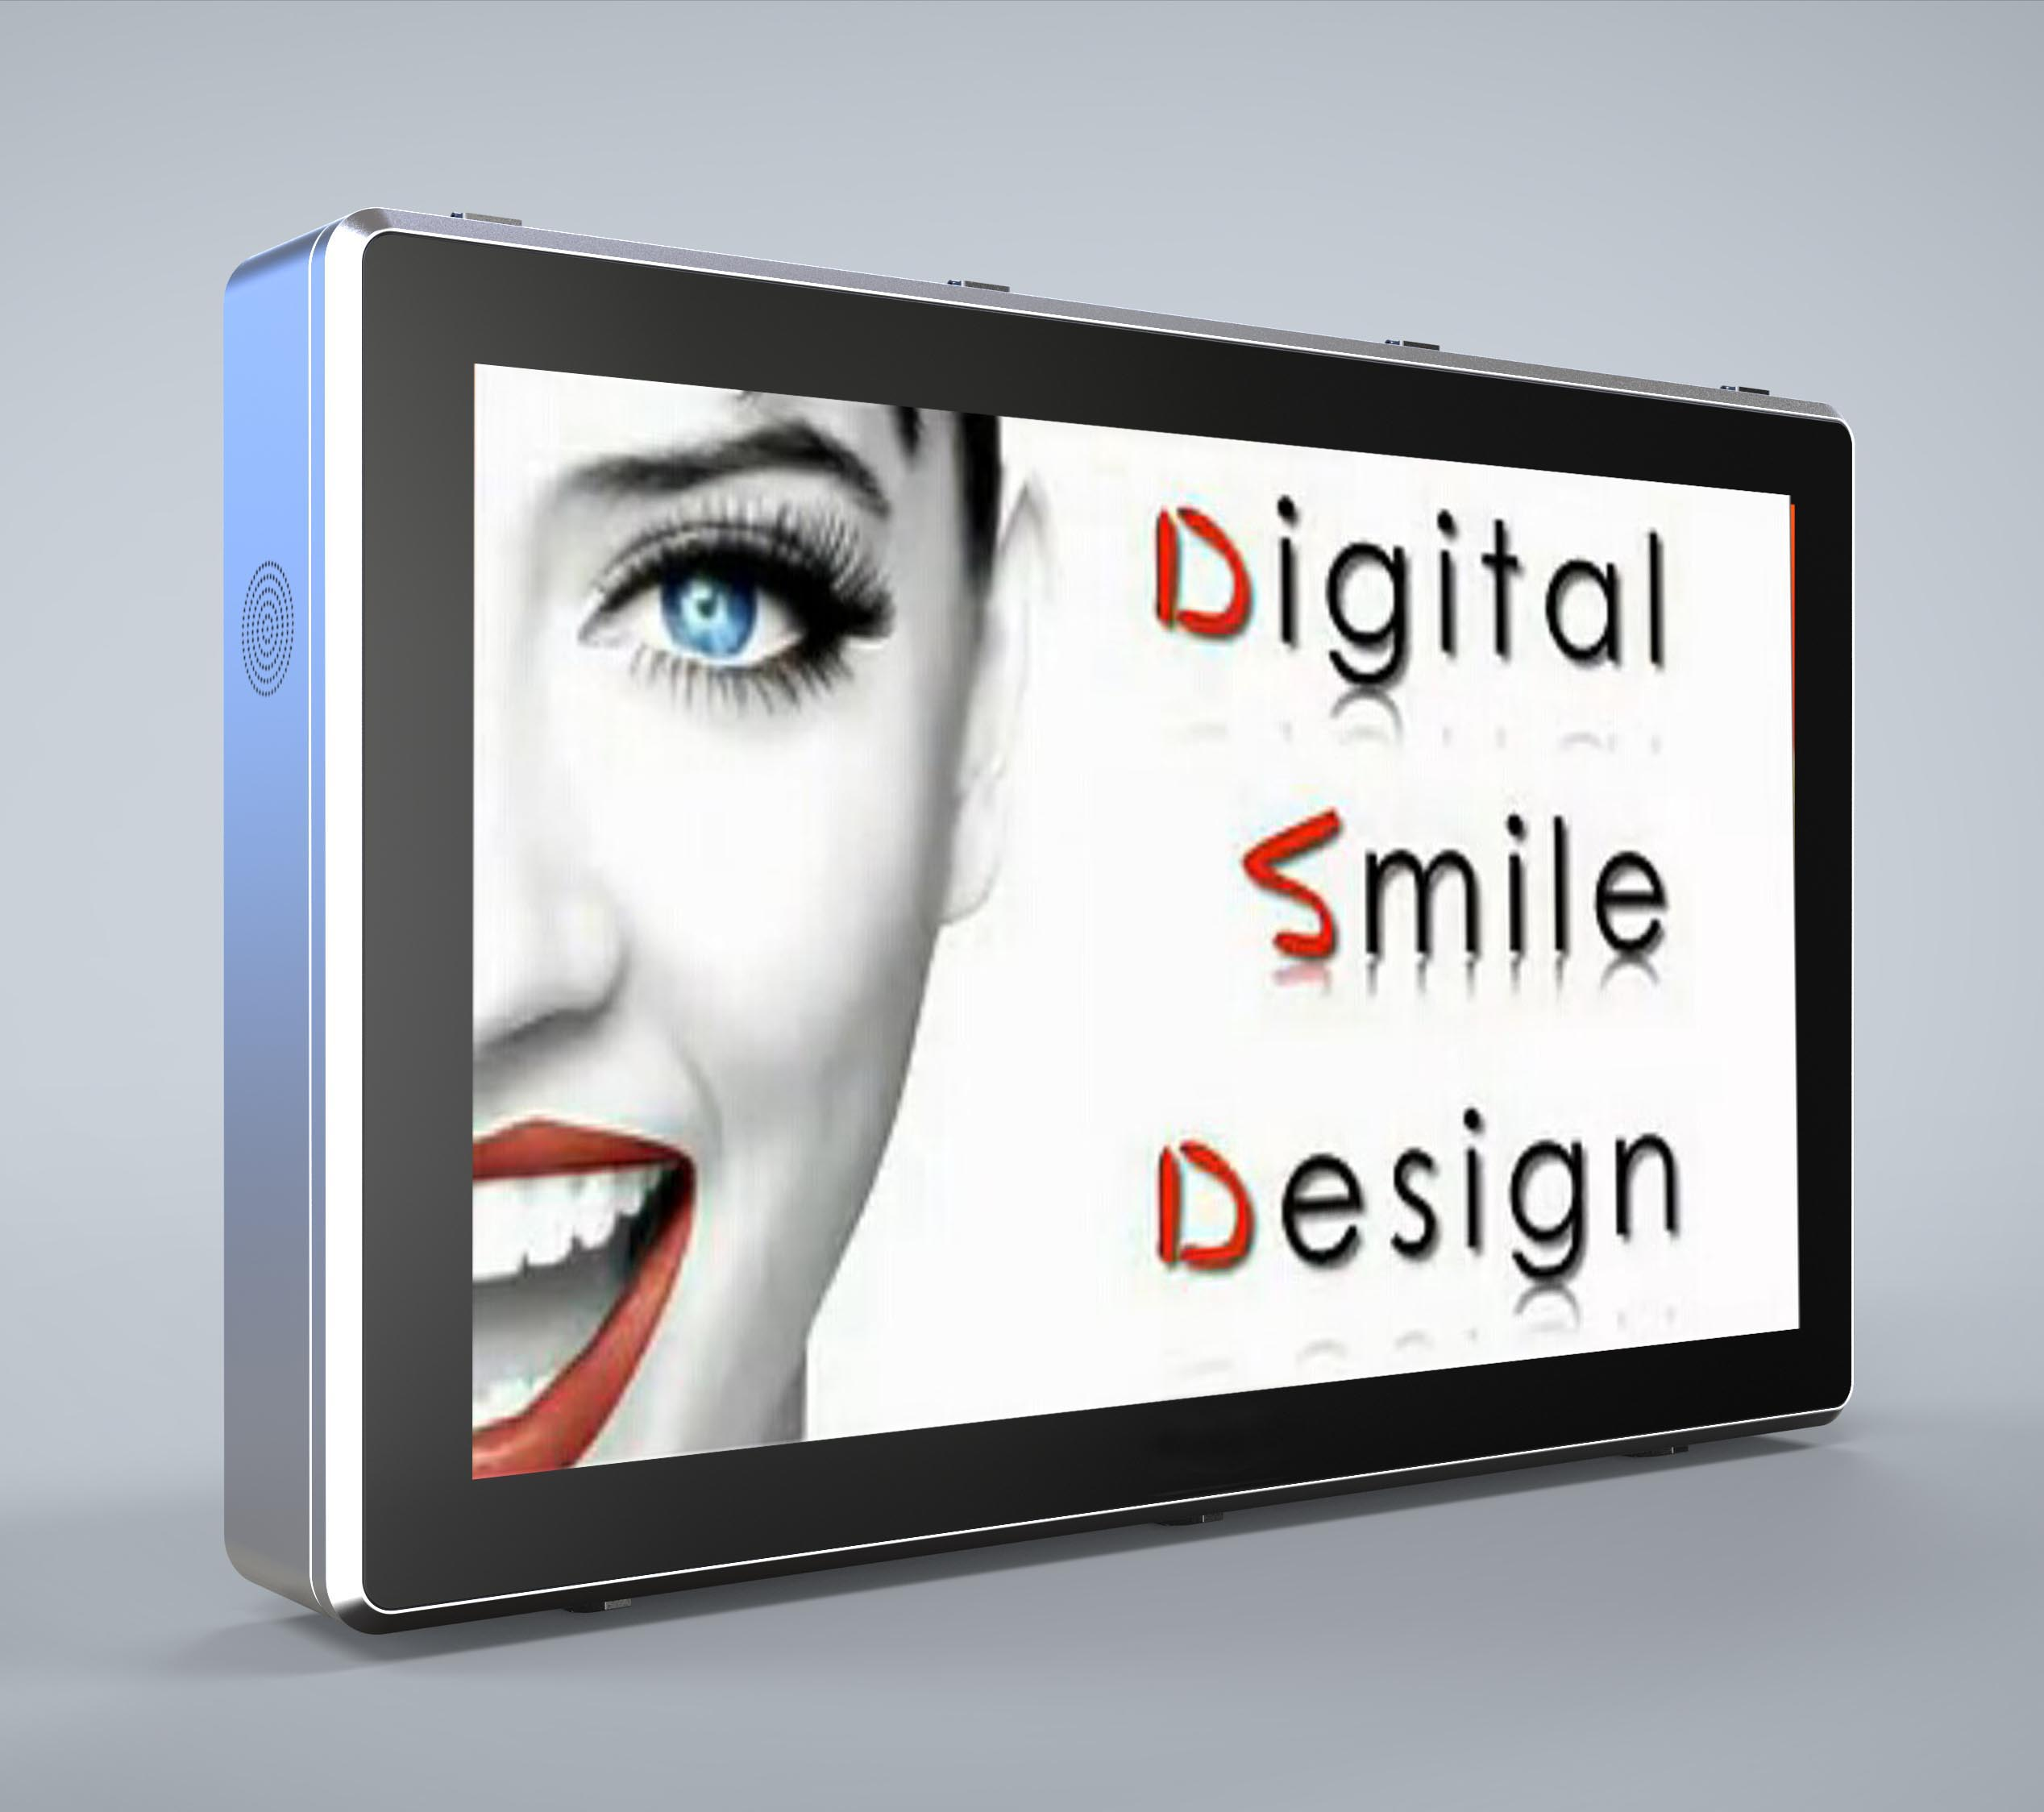 49-inch Outdoor LED Display Digital System for All Weather with IP65